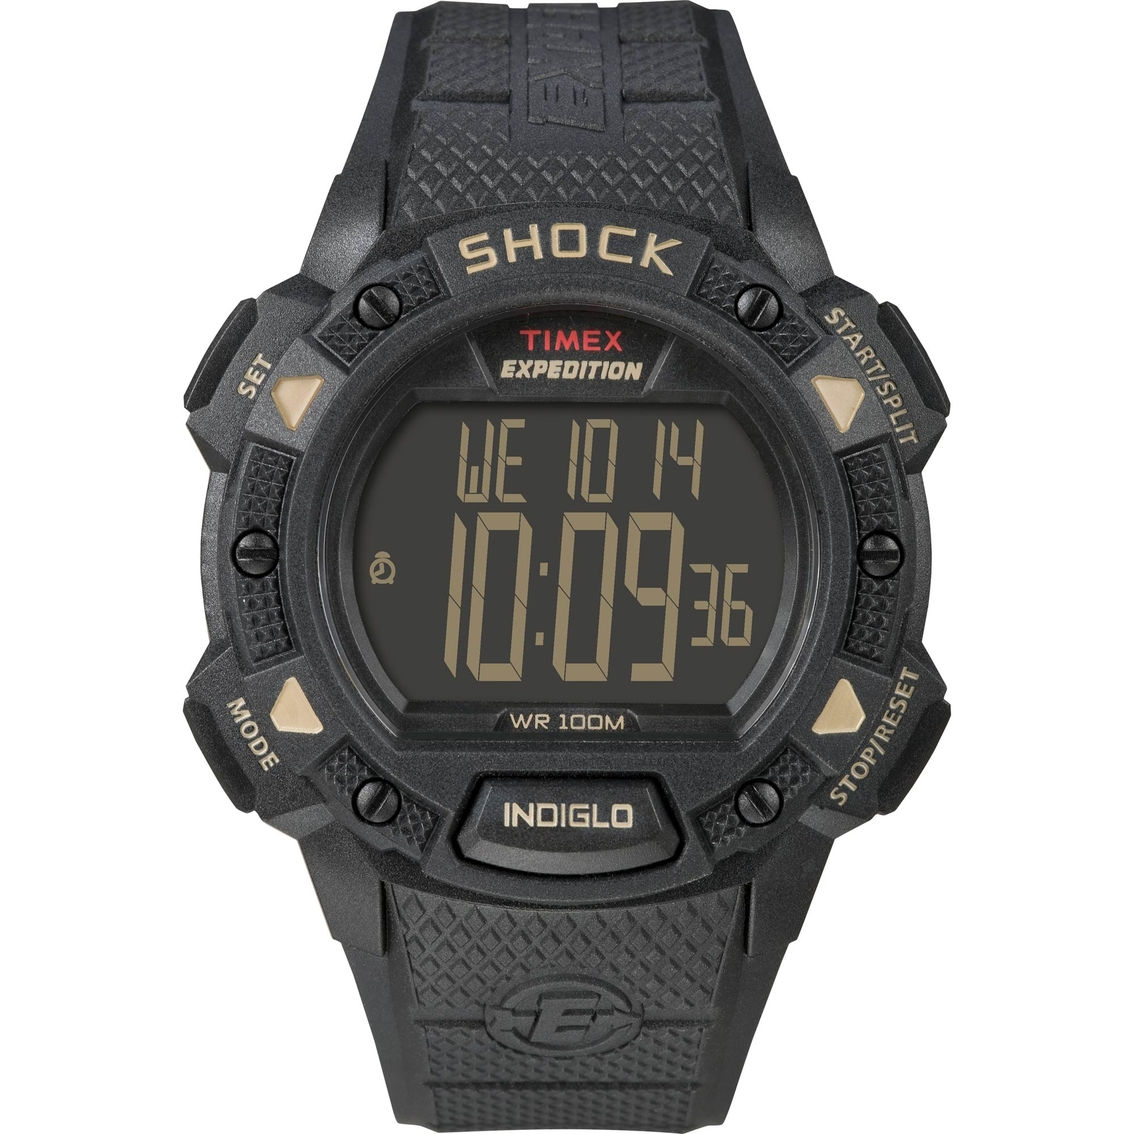 a0c0e2461 Timex Men's Expedition Shock Resistant Digital Chrono Alarm Timer Watch  49896CB